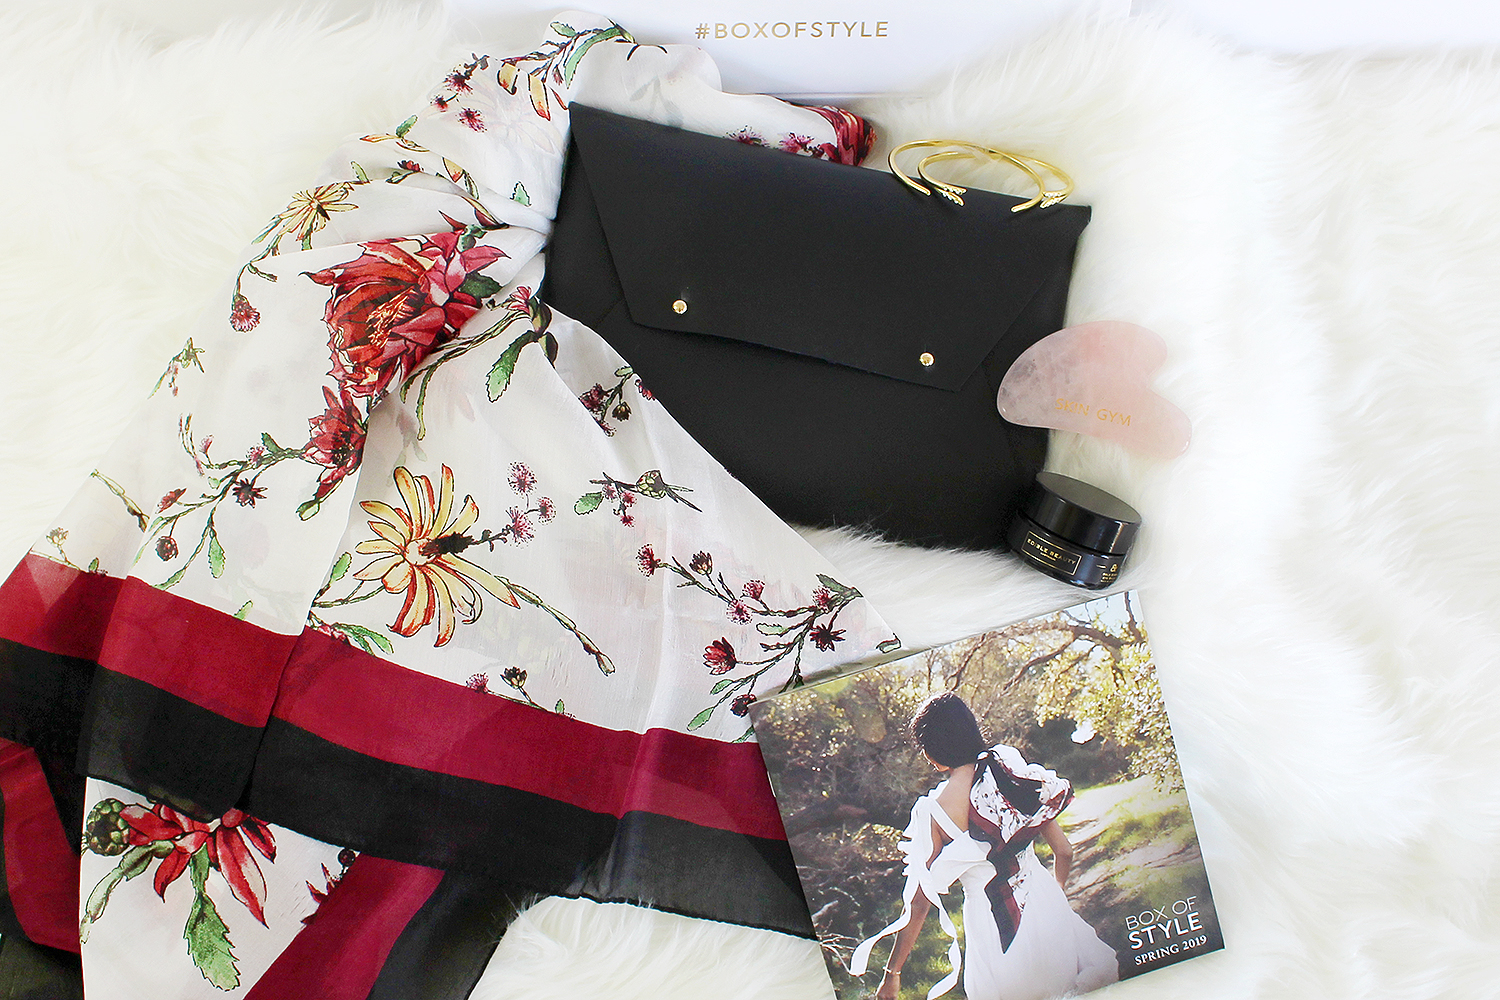 3755399cc9 I got my Spring Edition of Box of Style and I'm back with an unboxing post  for this gorgeous luxury box. It includes 3 fashion items for a mini  wardrobe ...